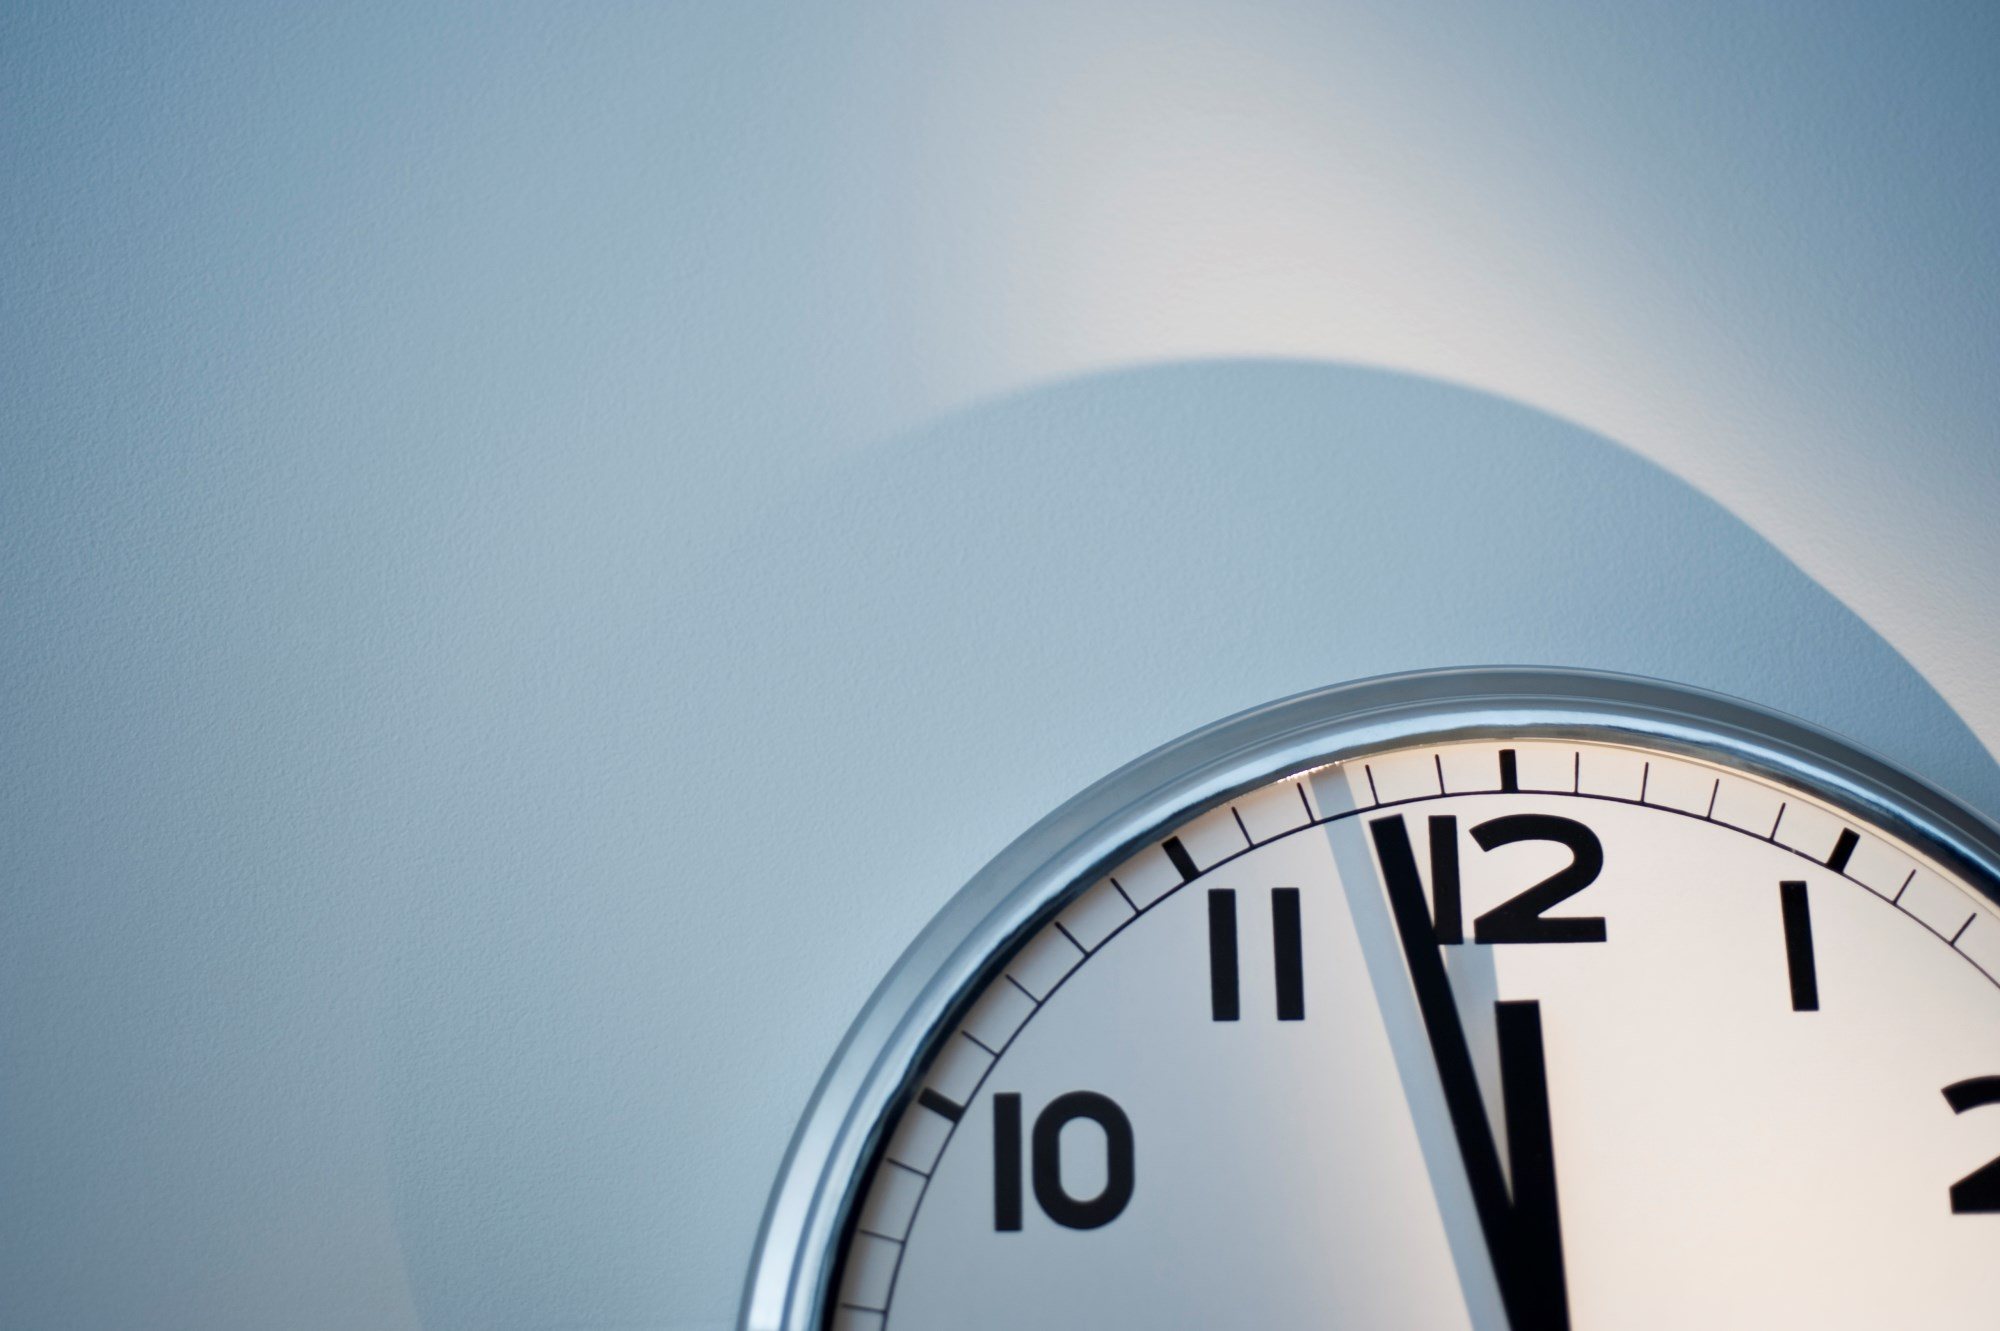 On account of hefty patient loads and administrative tasks, time management is a challenge for many rheumatologists.